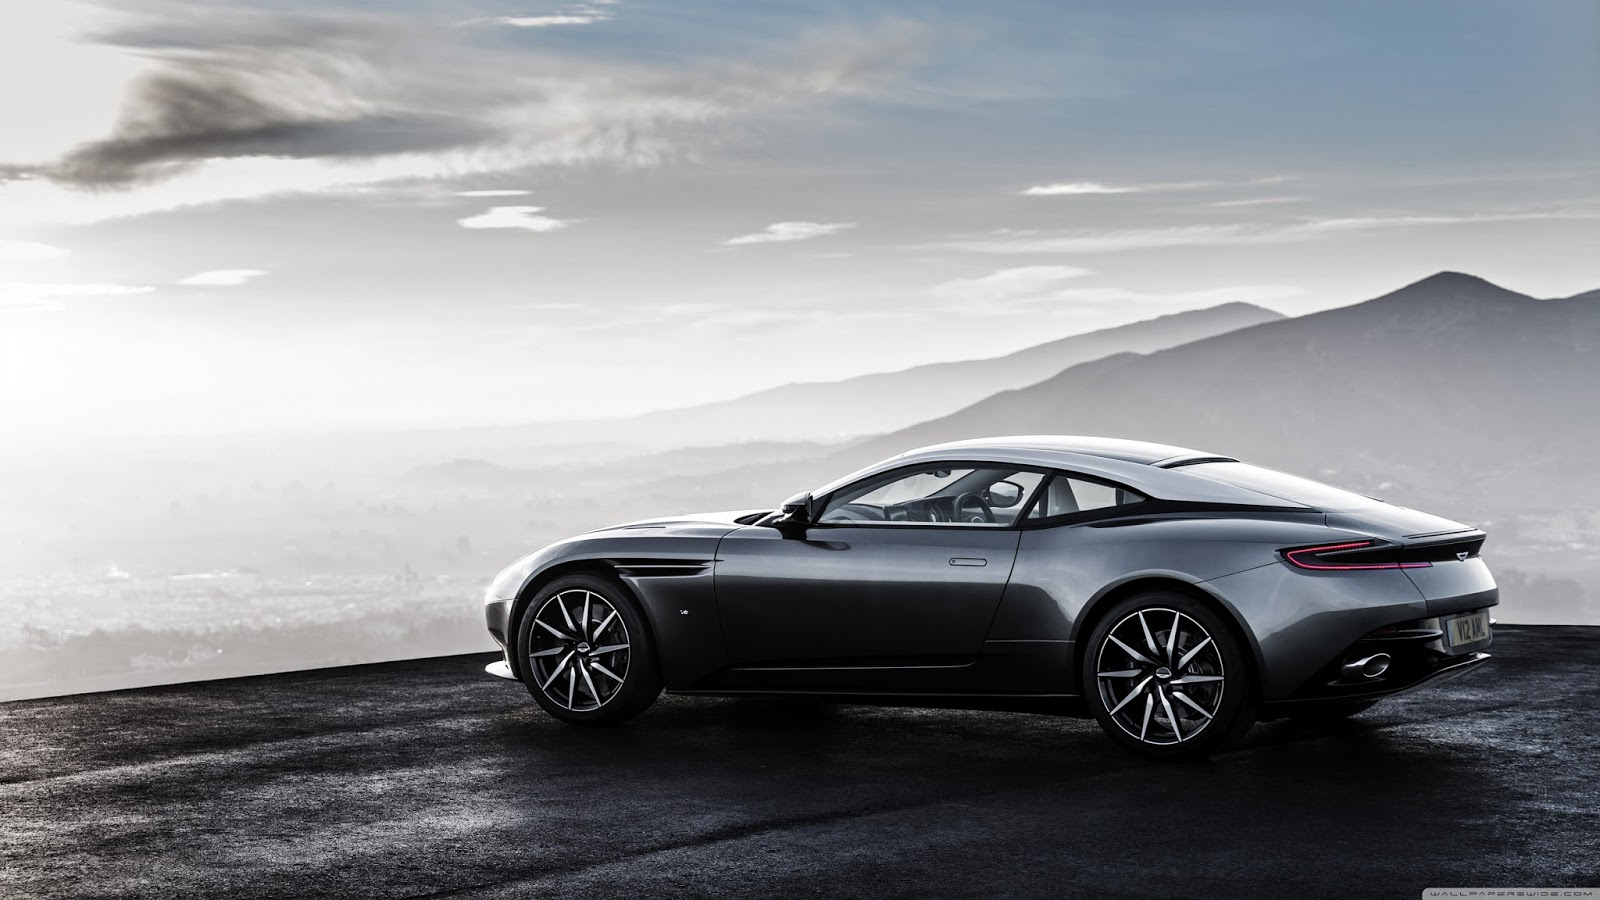 Tuned Cars Wallpapers Aston Martin db11   wallpaper 1600x900